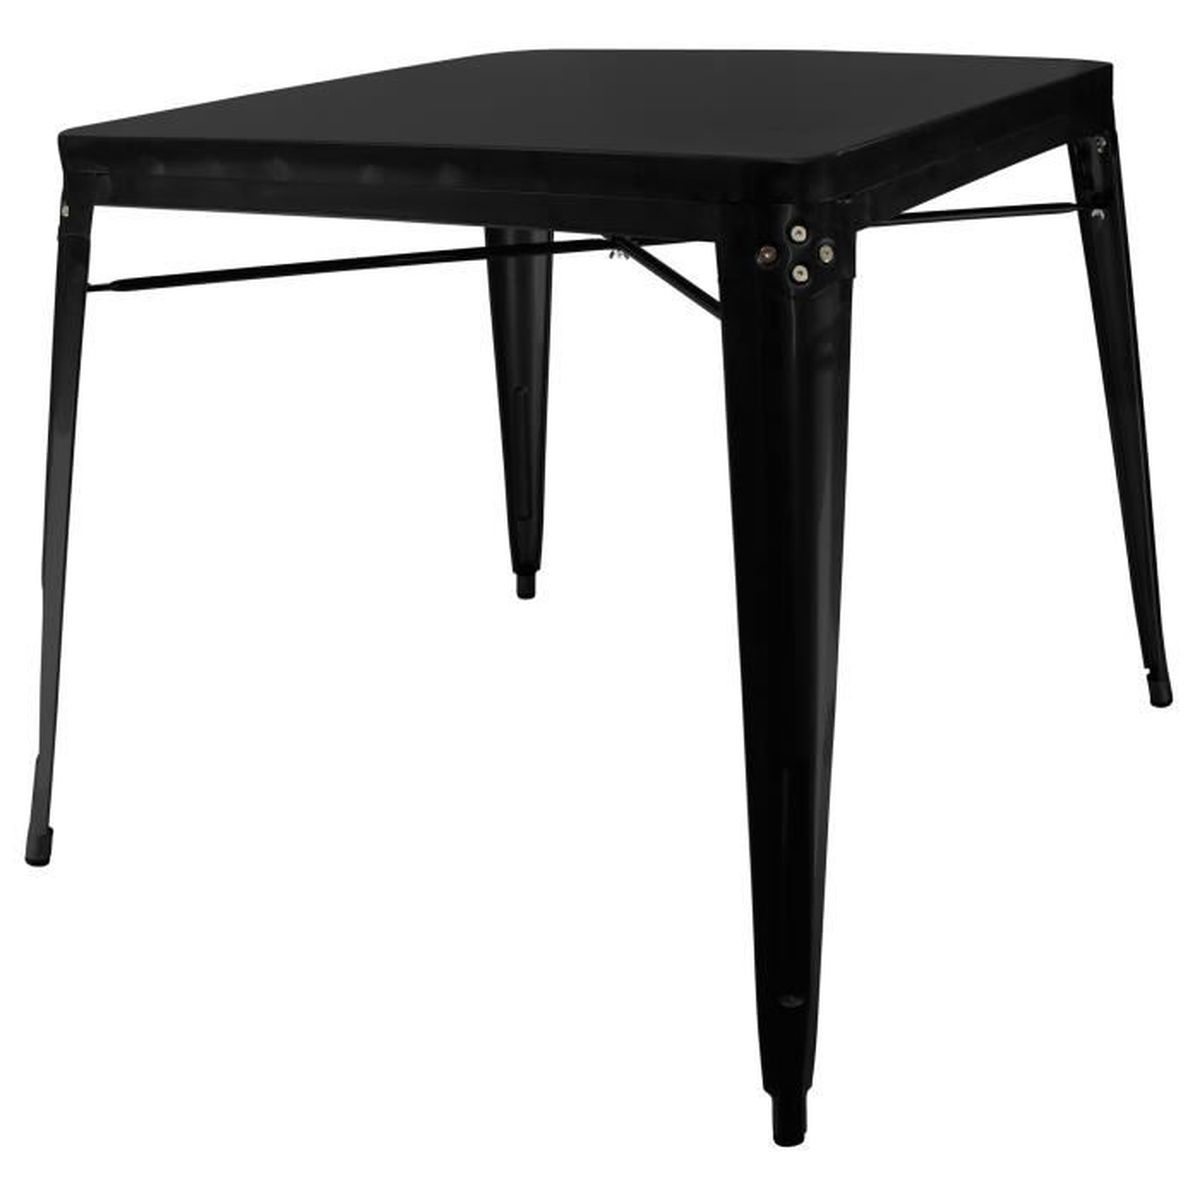 Chaise privee table industrielle noir achat vente chaise cdiscount - Cdiscount vente privee ...